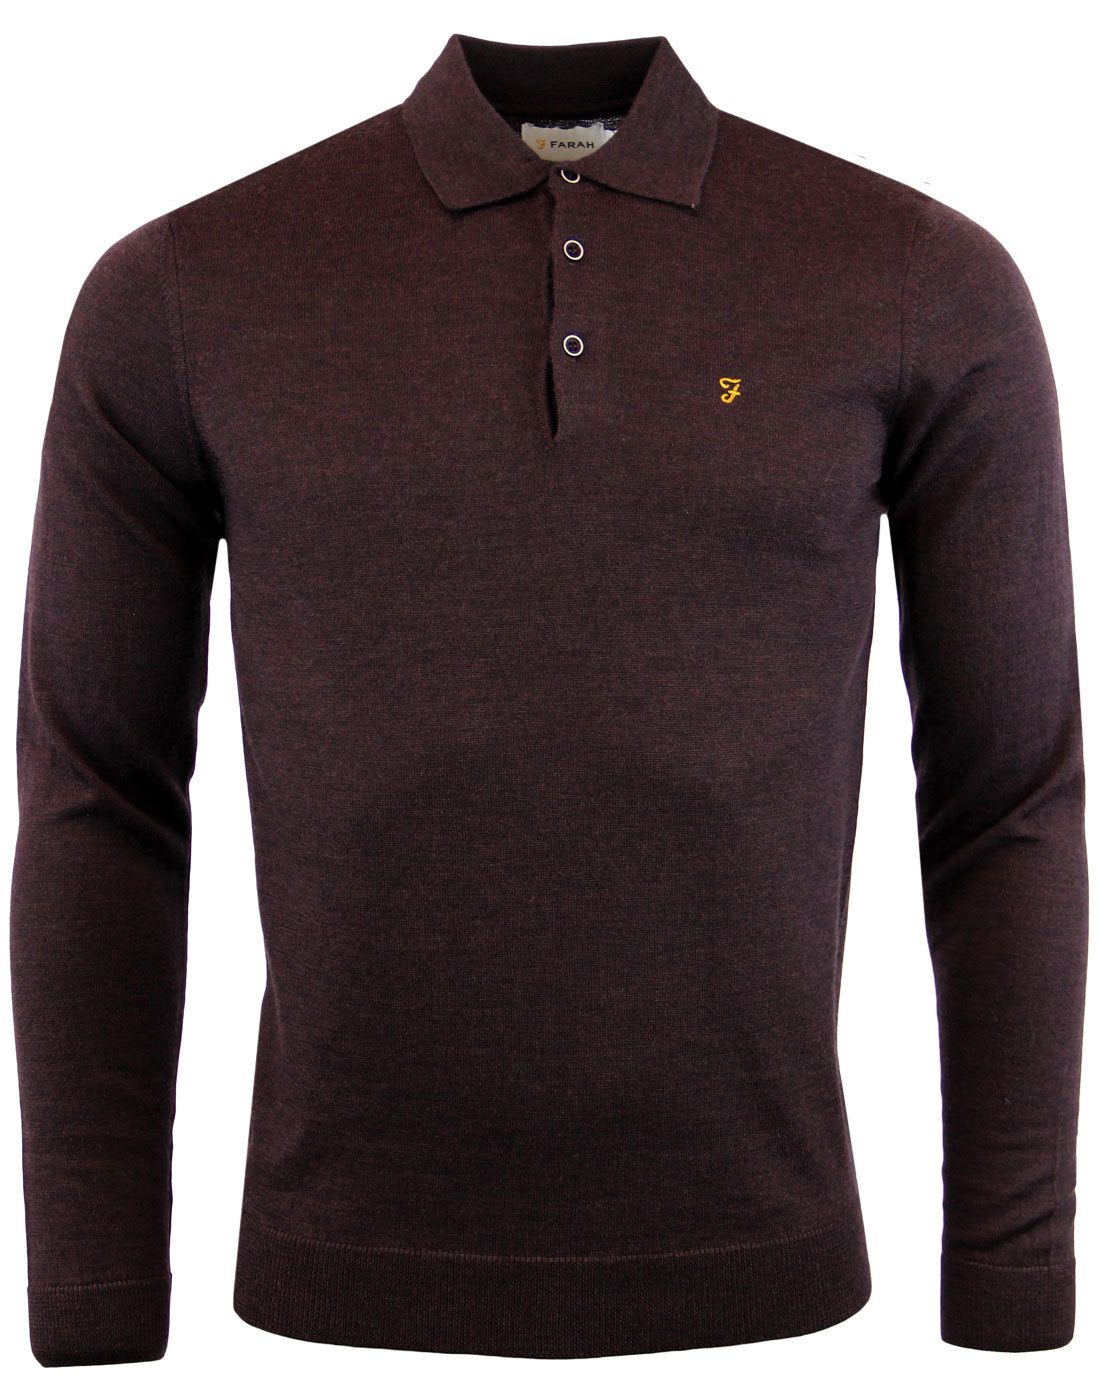 Maidwell FARAH Retro 60s Mod Knitted Wool Polo